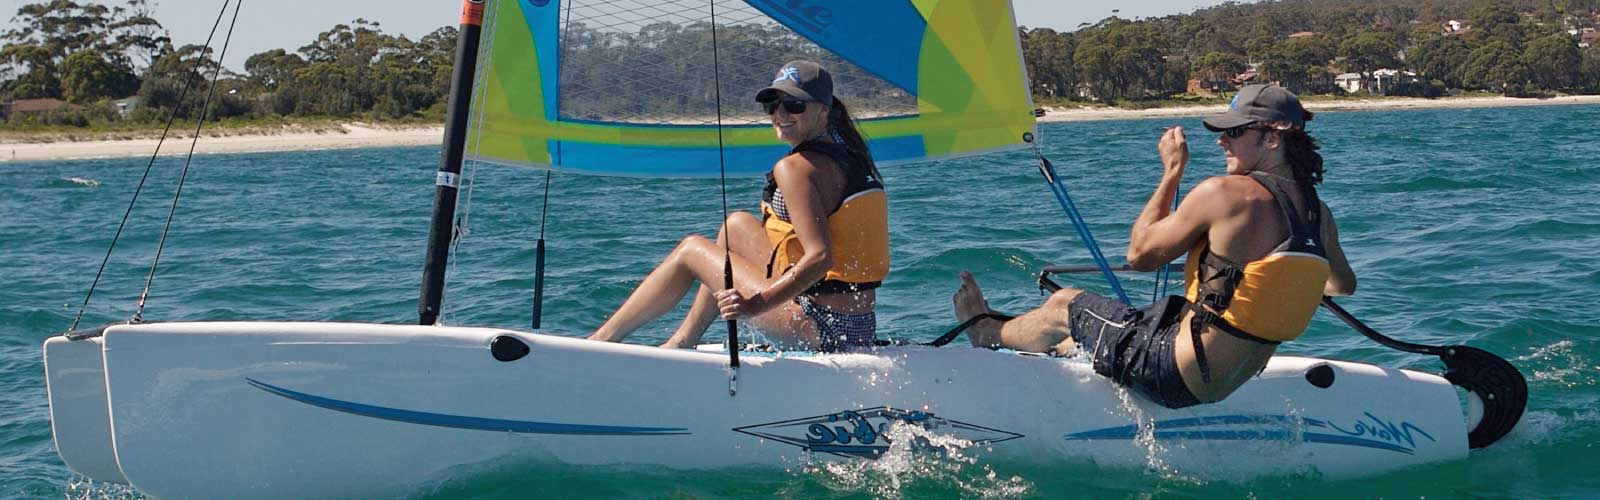 Hobie Sailboat Rental